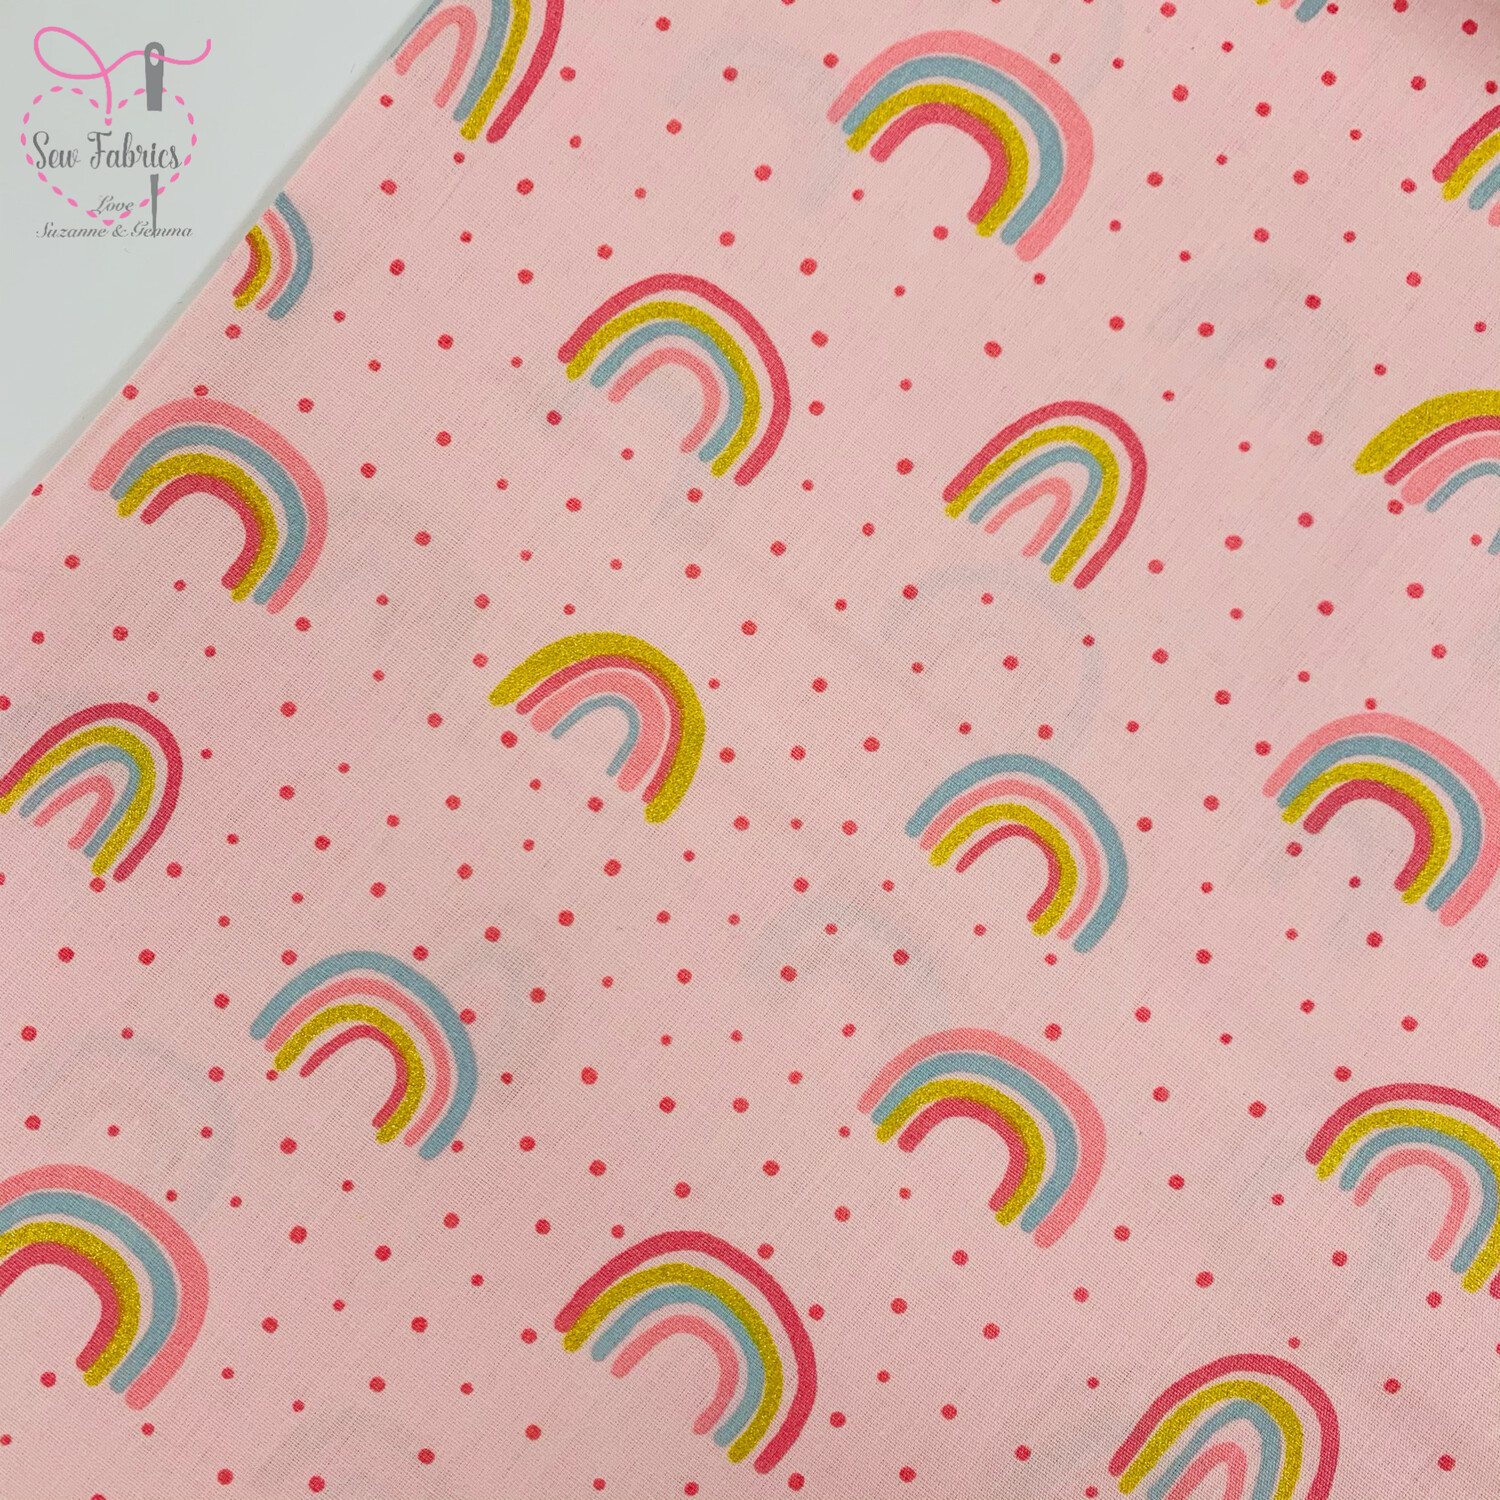 "John Louden Rose Pink Rainbow Glitter Fabric 100% Cotton with Glitter, 60""/150cm Width"